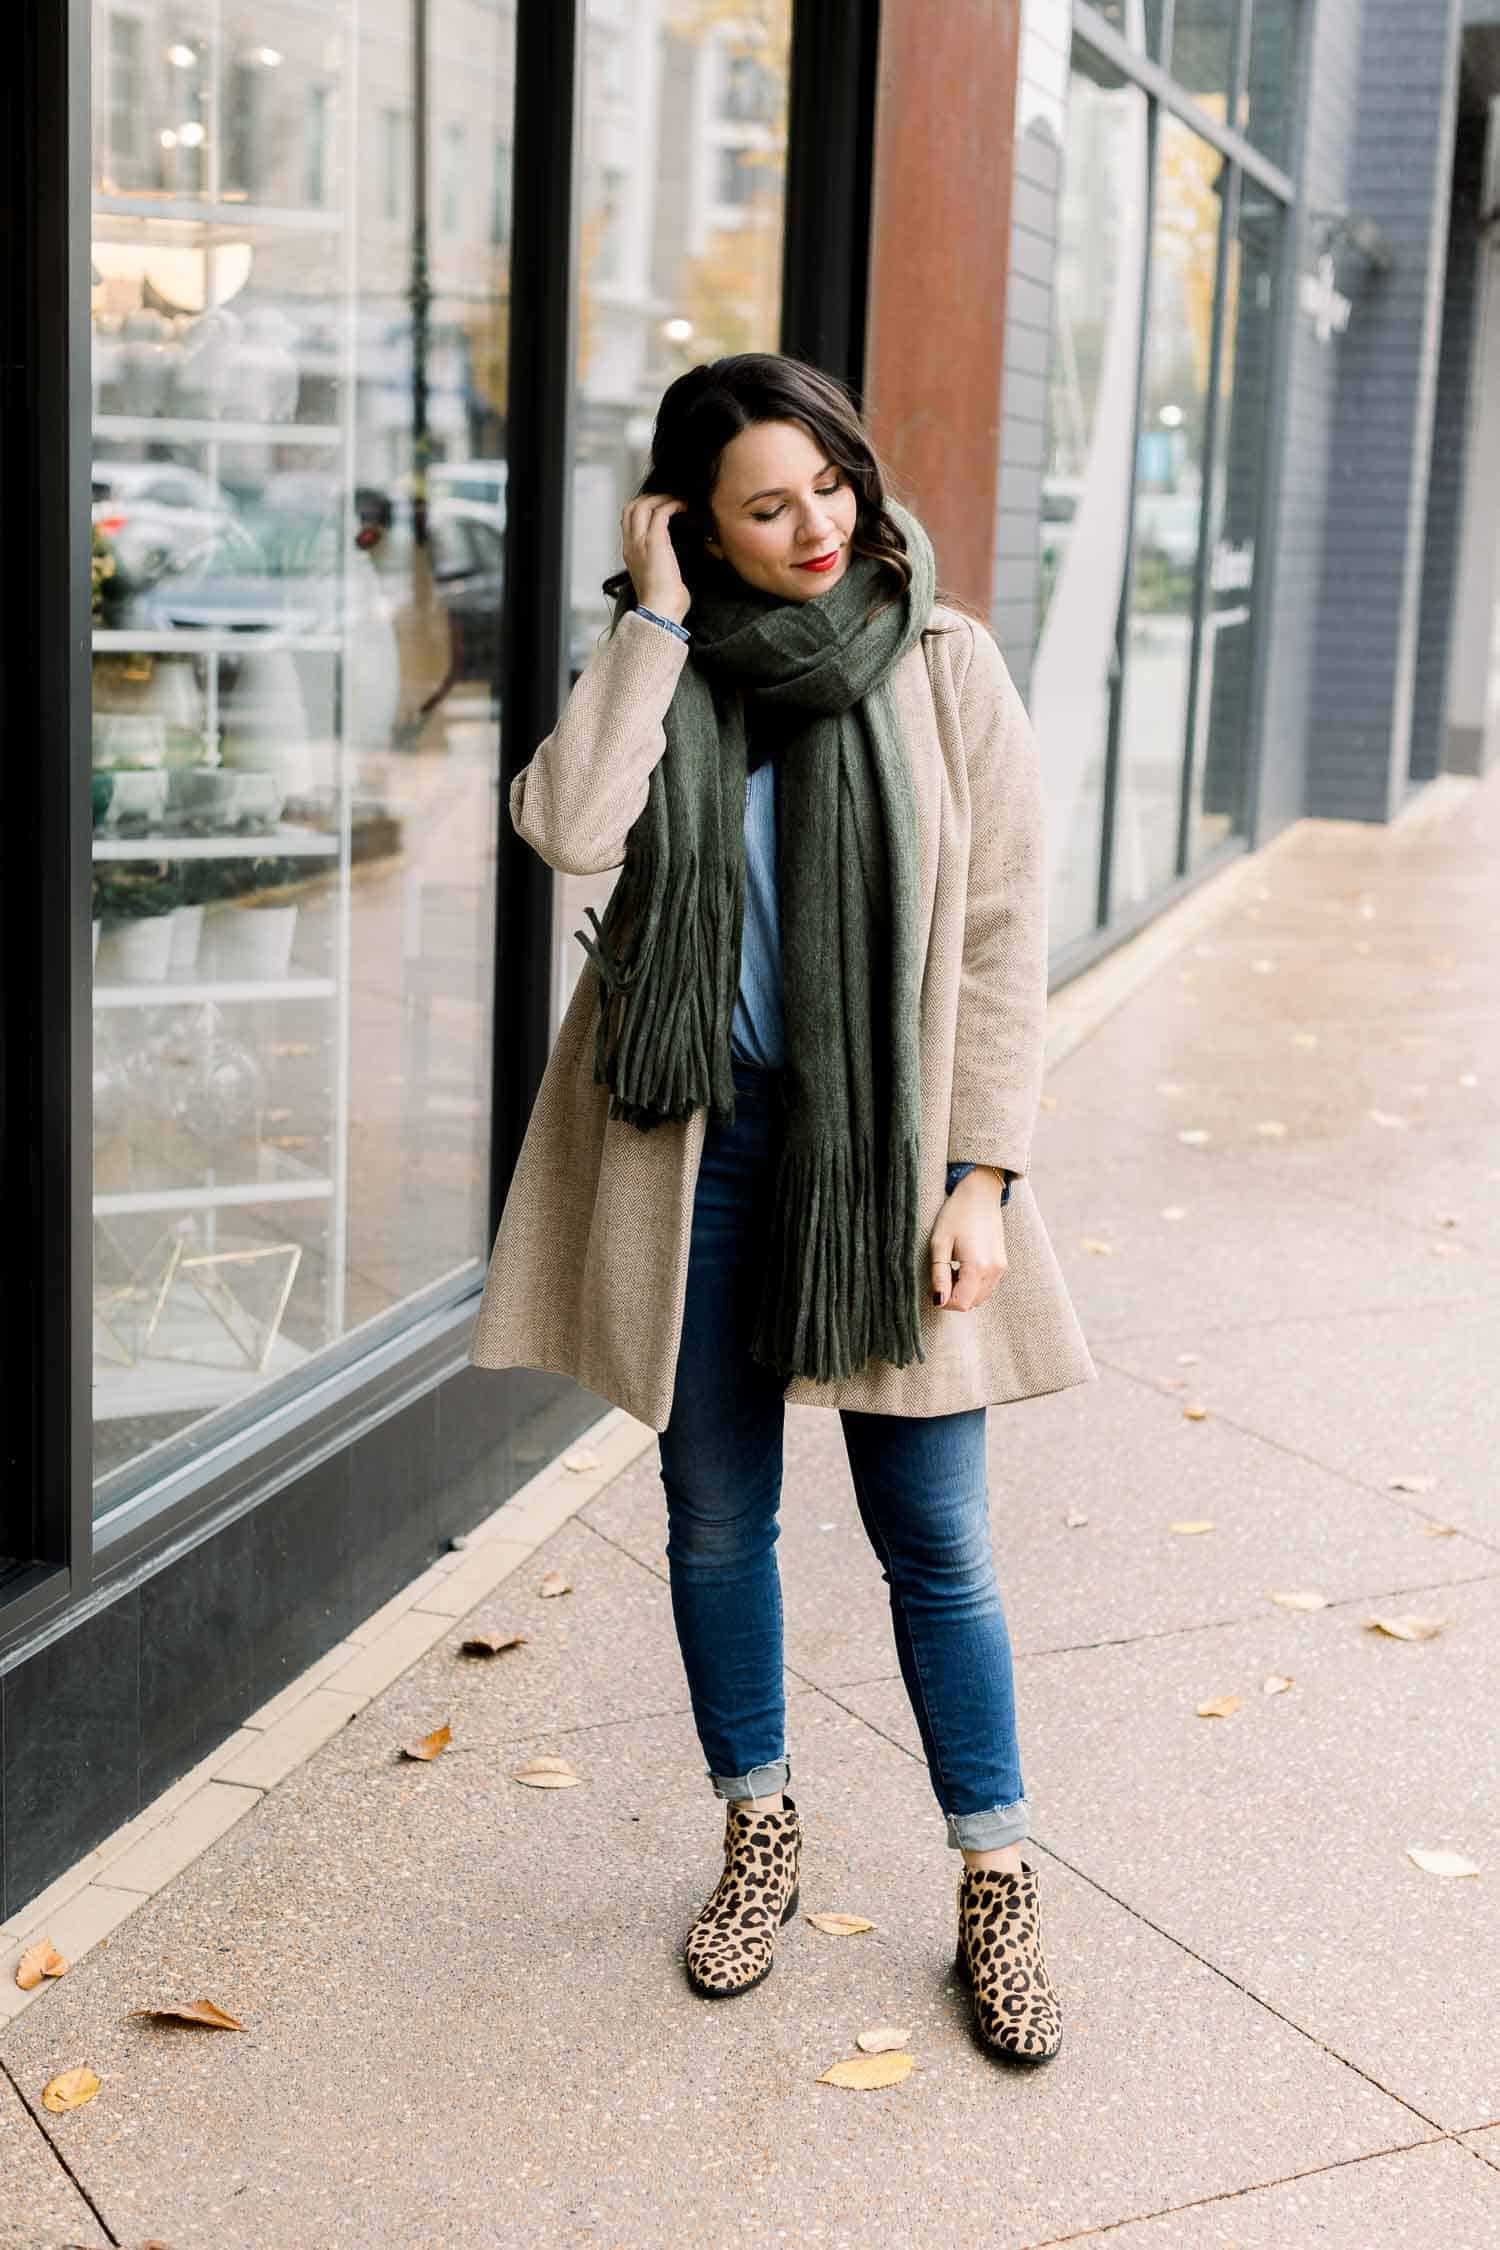 Jessica's Outfit: Madewell Coat  • Madewell Jeans • Anthropologie Fringe Scarf • Steven Leopard Booties - ON SALE! • Beautycounter Lipstick in 'Girls' Night'